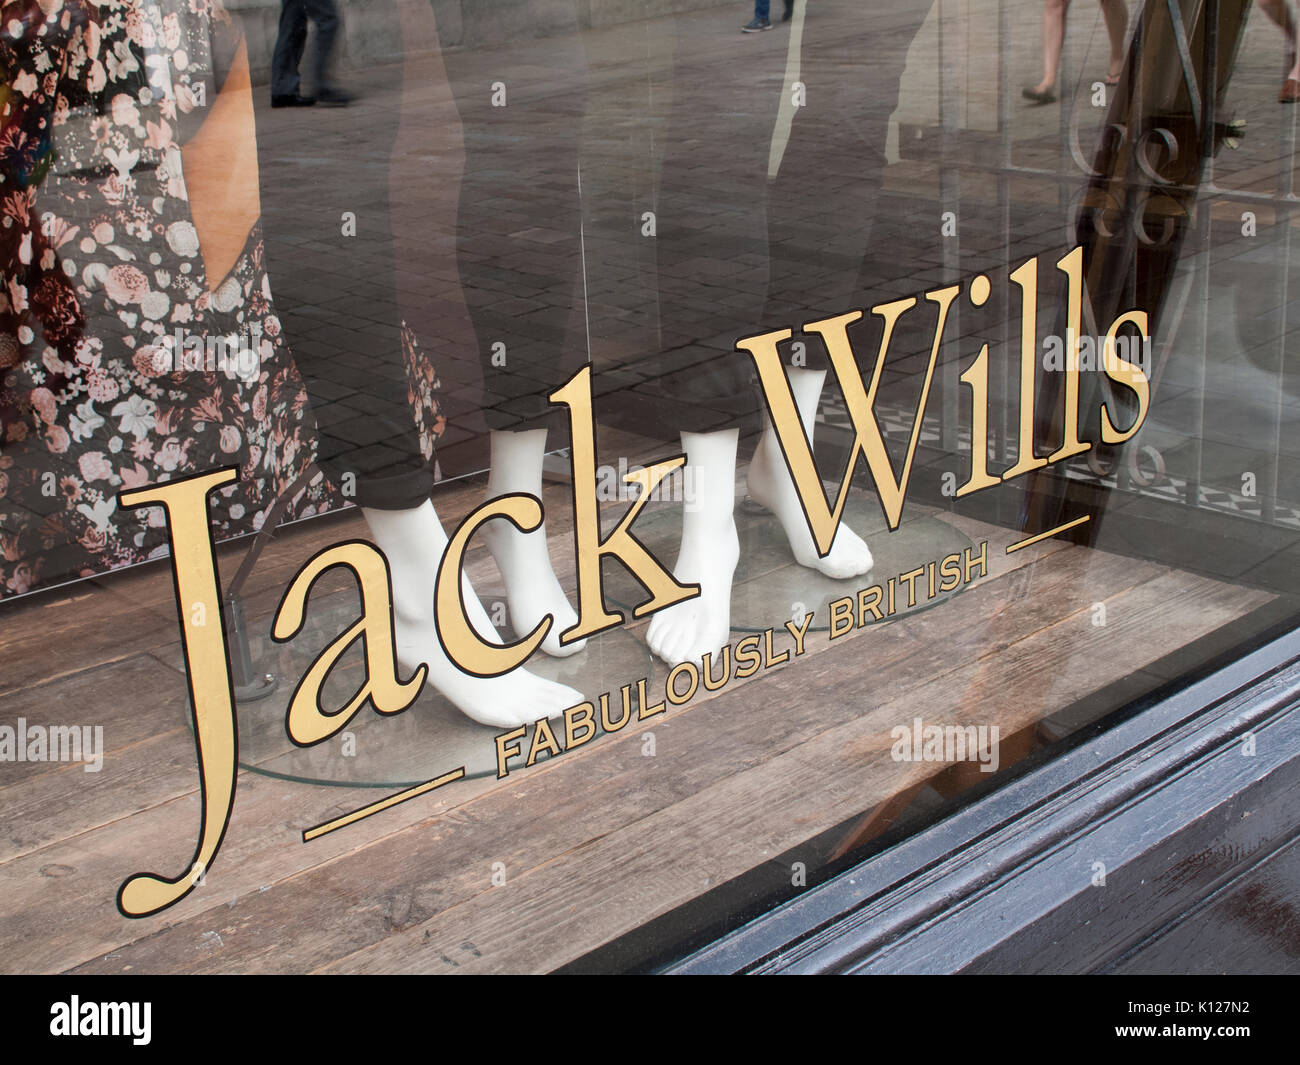 Jack Wills Fabulously British window display, company founded by Peter Williams and Robert Shaw in 1999 - Stock Image